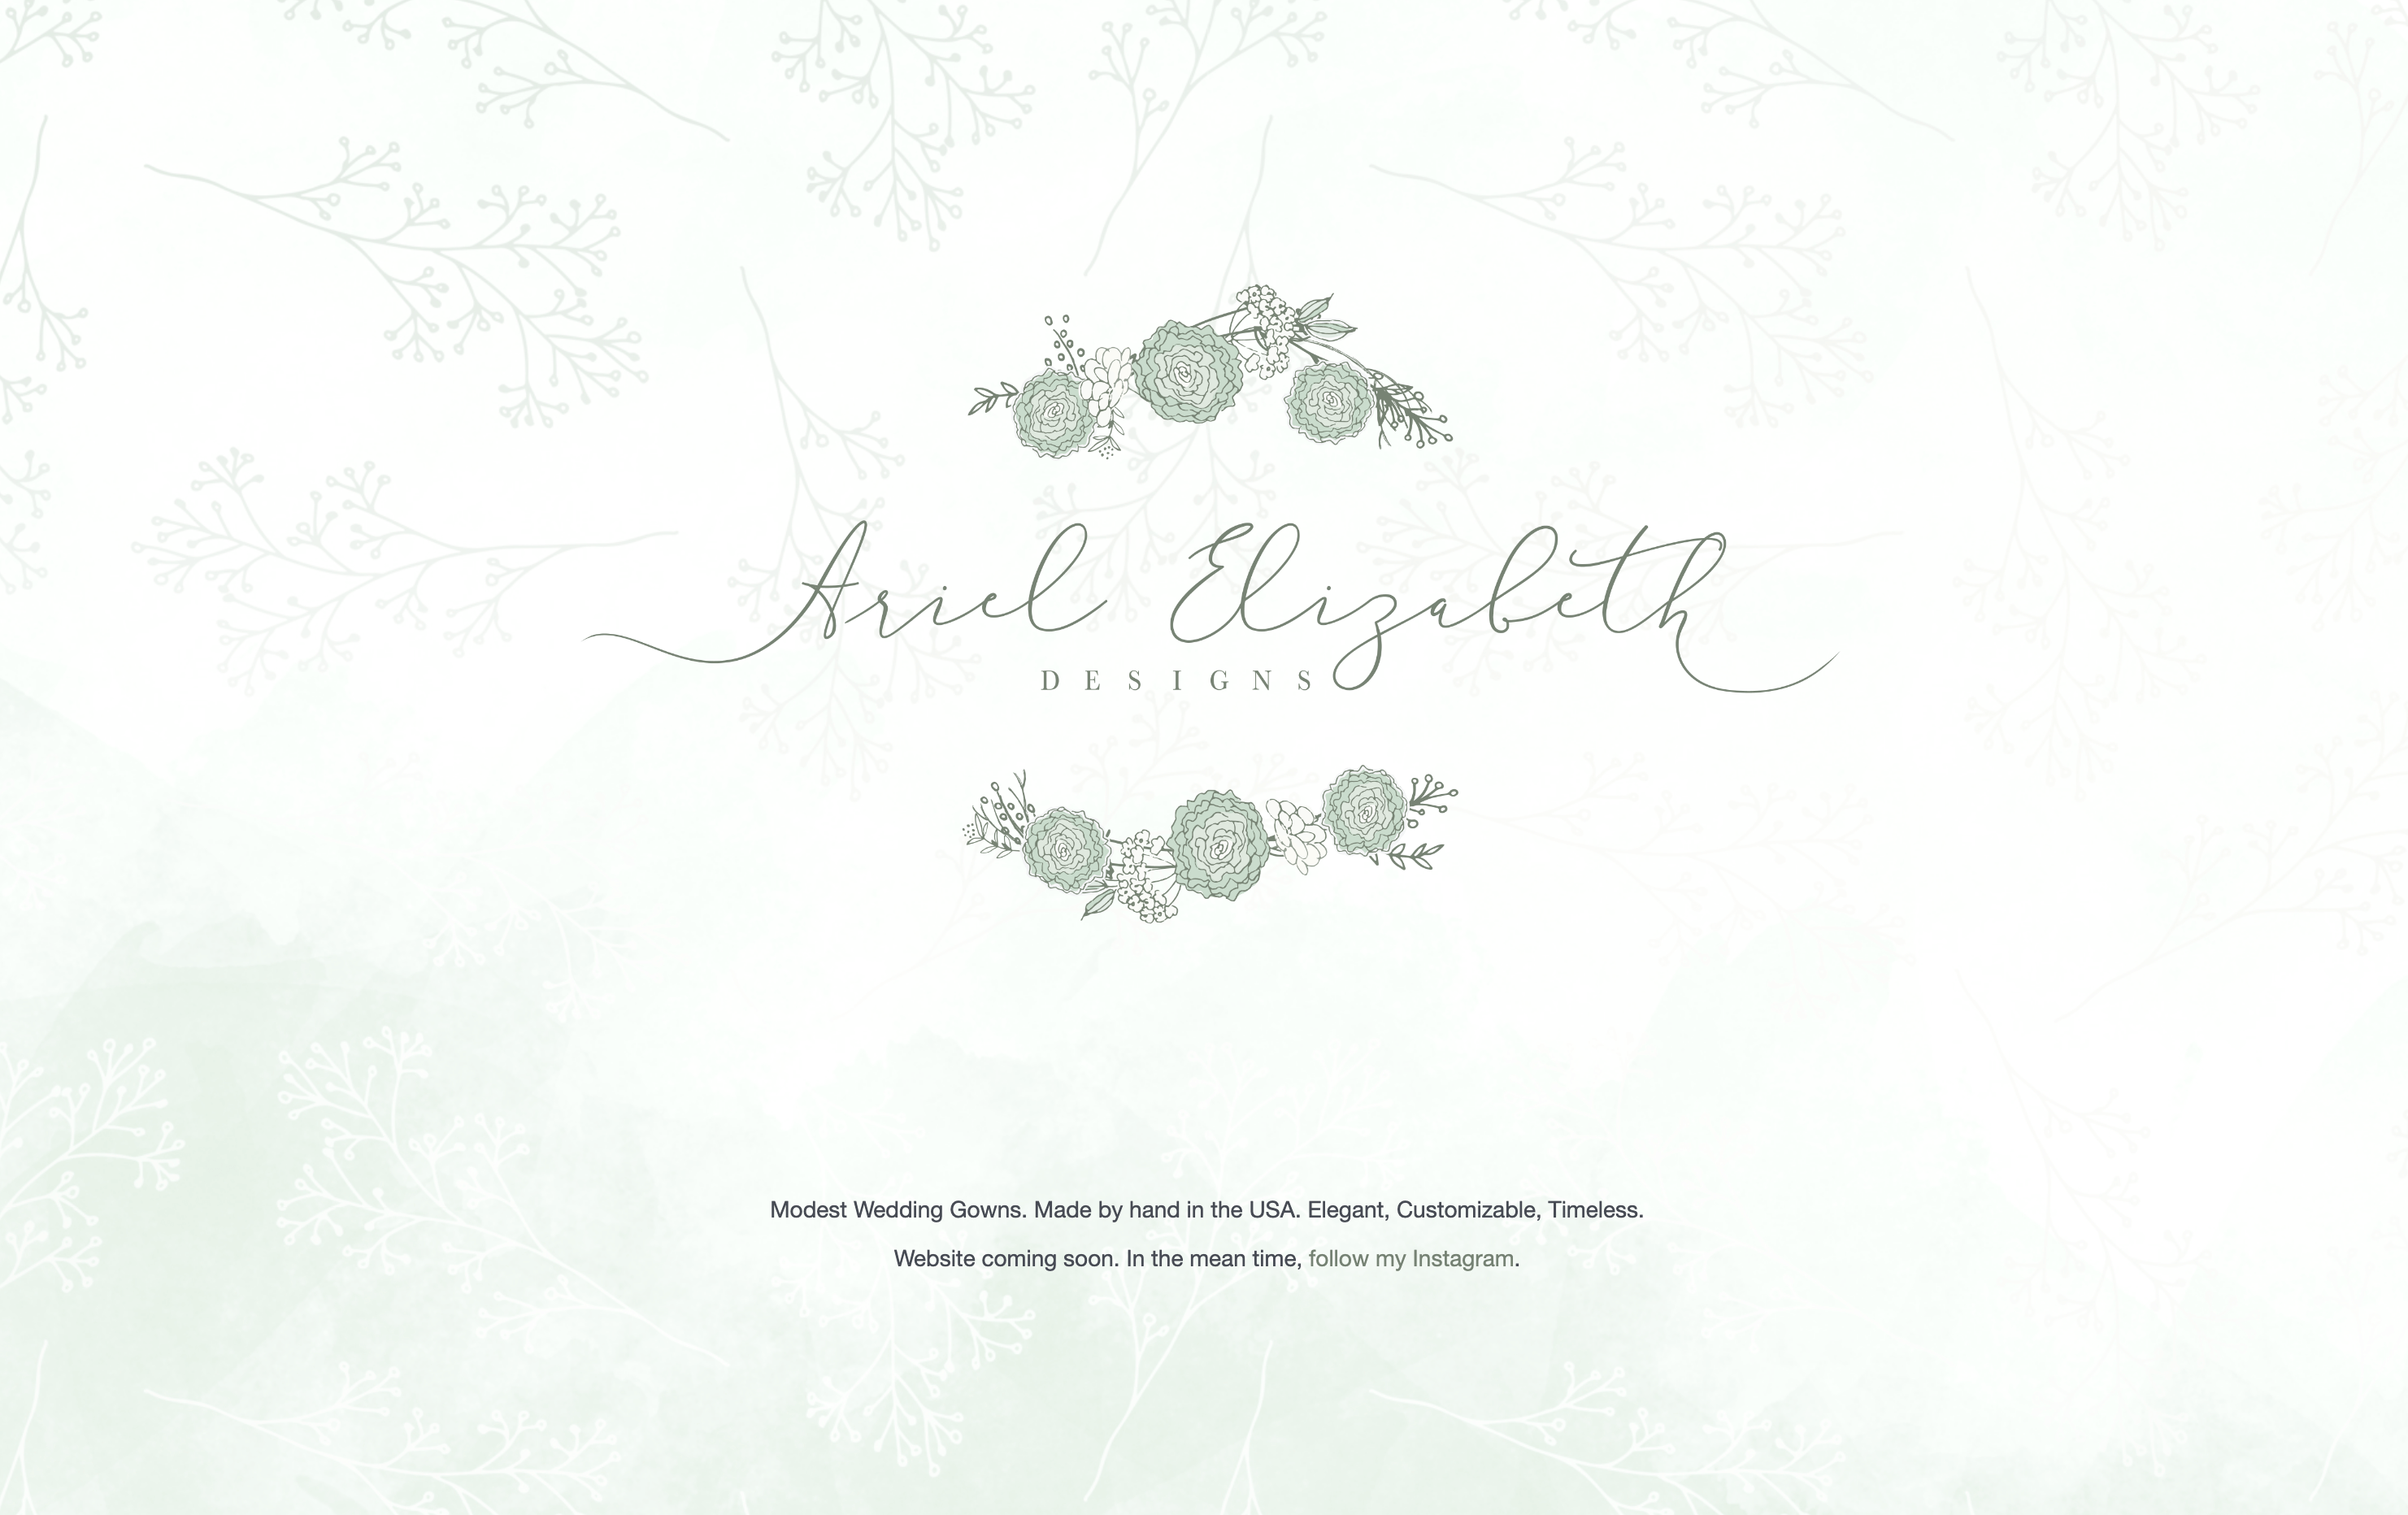 Temporary landing page for Ariel Elizabeth Designs, featuring the logo and a textured background.